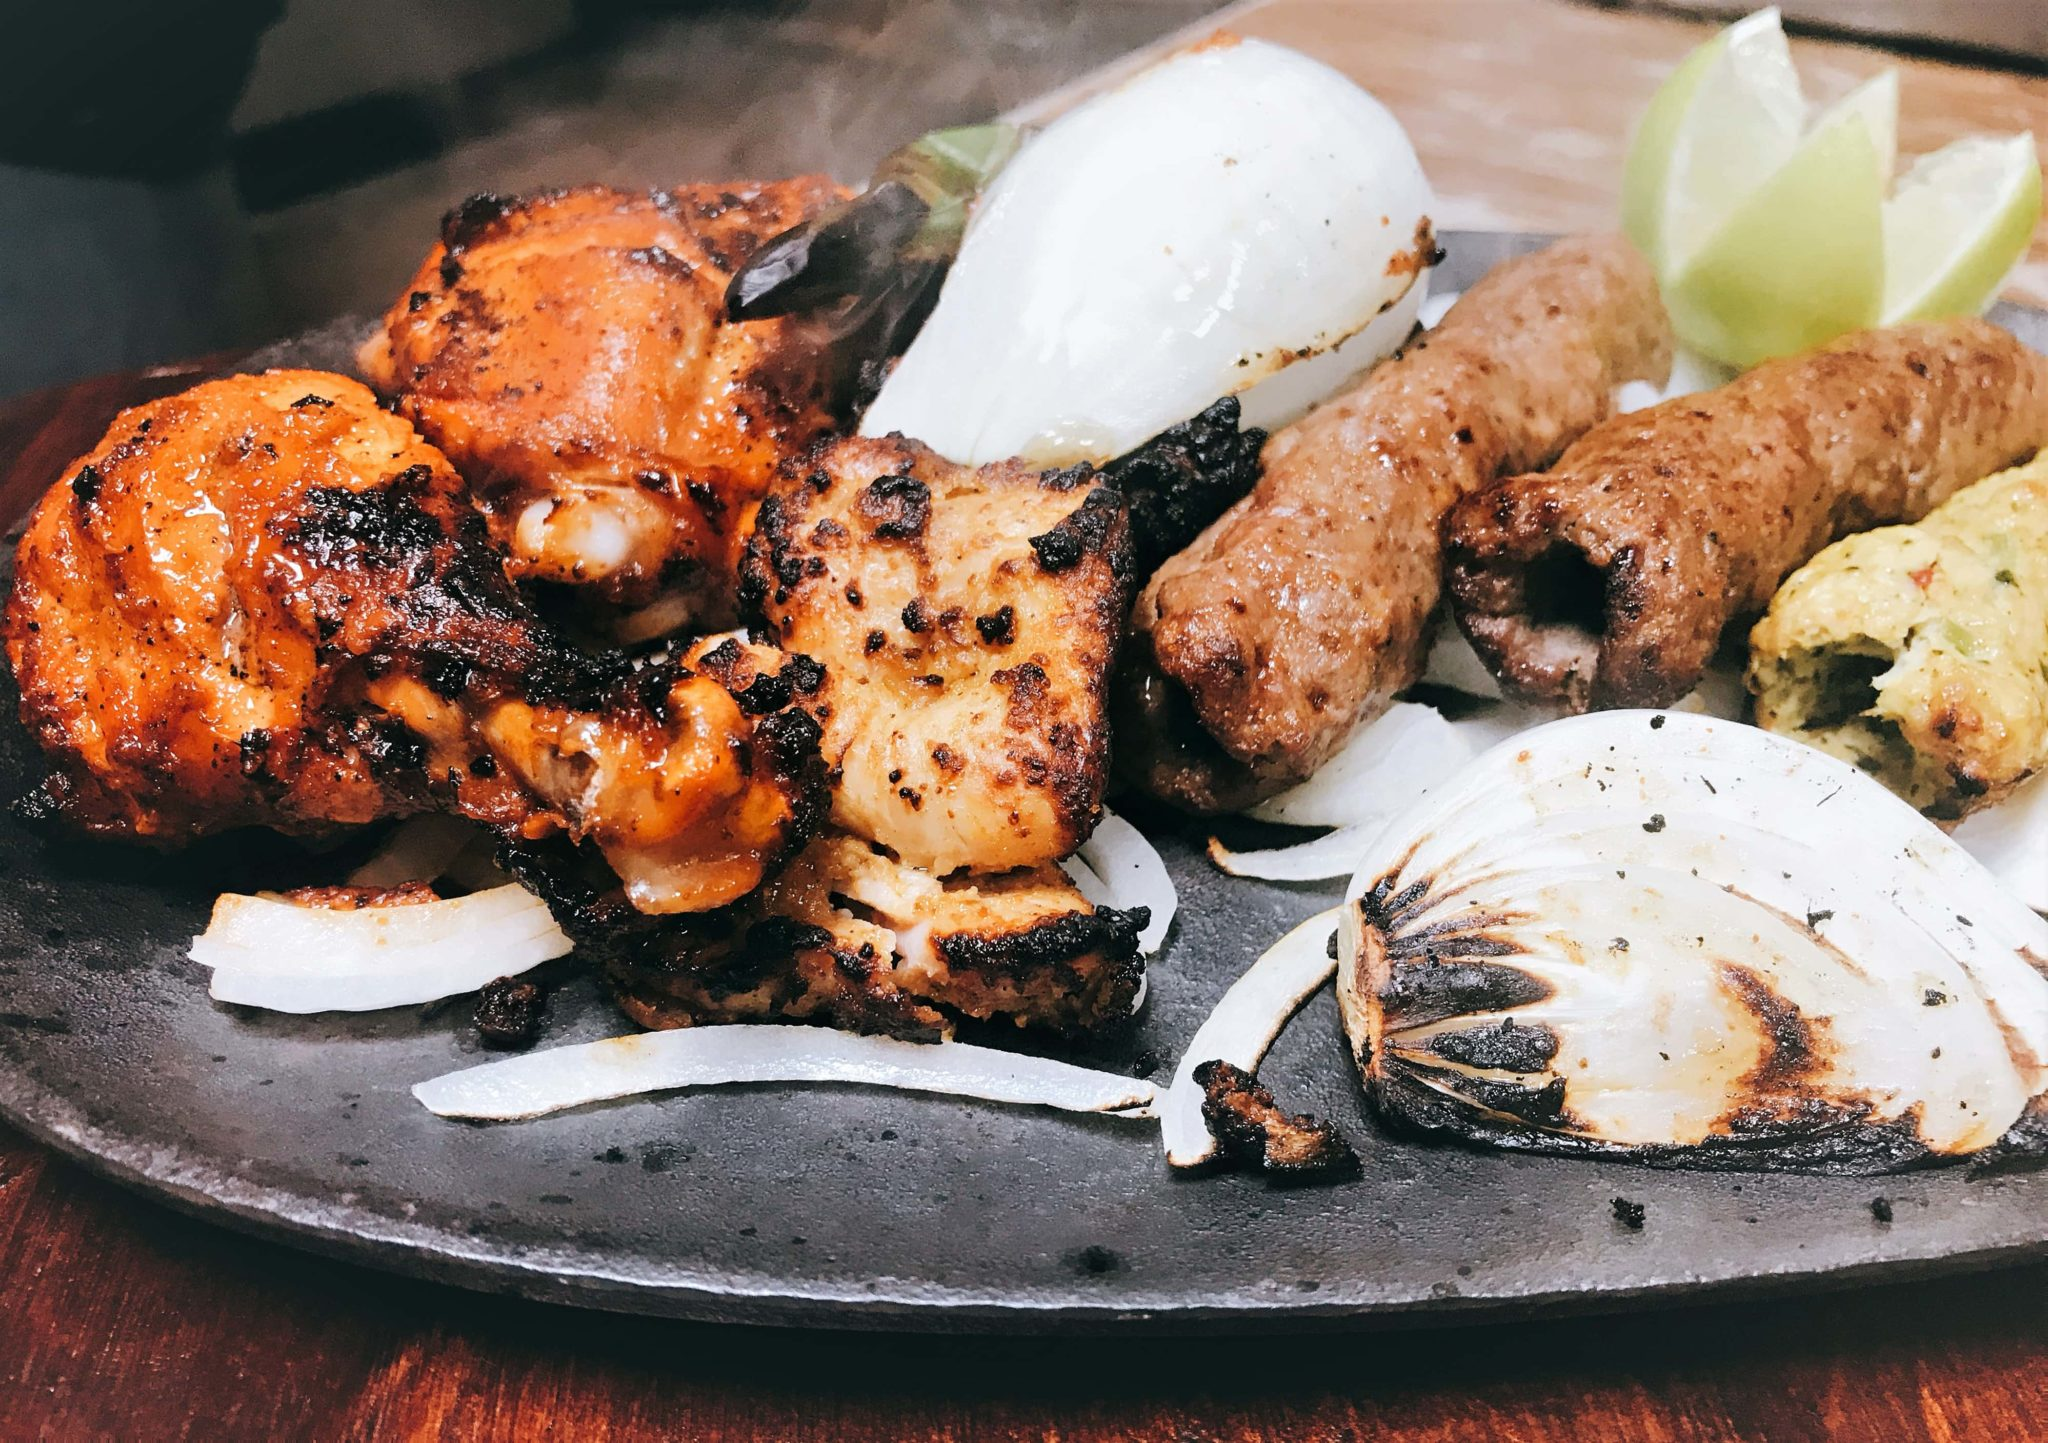 Best Bbq And Indian Pakistani Halal Restaurant In Houston Tx